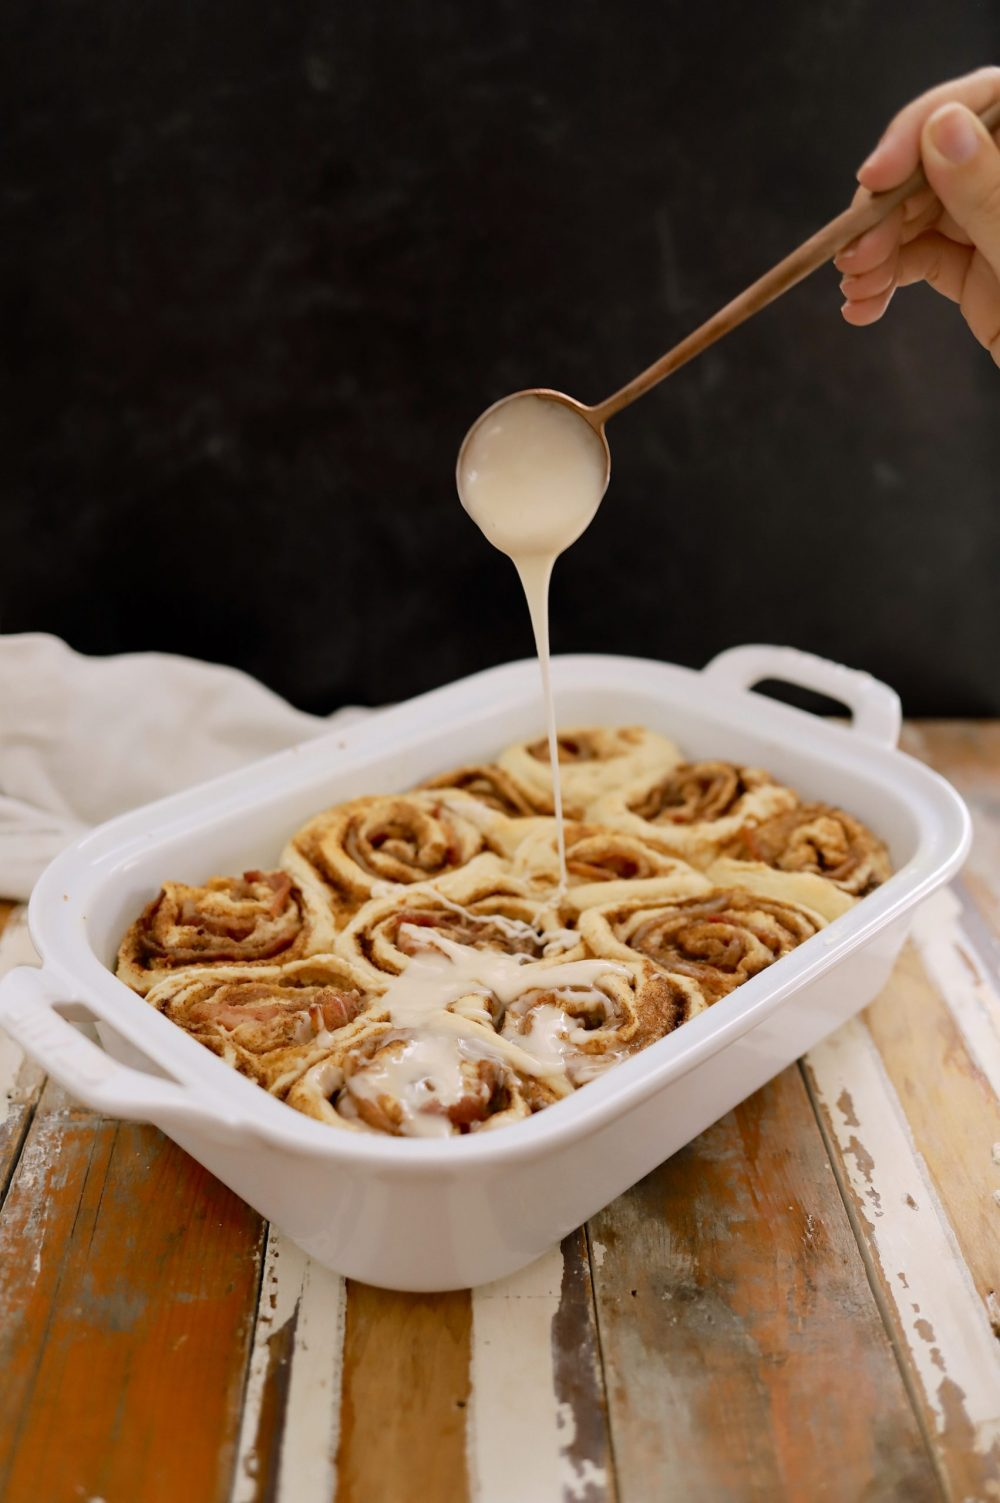 Deliciously Salty Sweet Bacon Cinnamon Rolls with Bourbon Glaze from food and lifestyle blogger Tabitha Blue of Fresh Mommy Blog | Bacon Cinnamon Rolls by popular Florida lifestyle blog, Fresh Mommy Blog: image of a woman drizzling icing some bacon cinnamon rolls in a white ceramic baking dish.